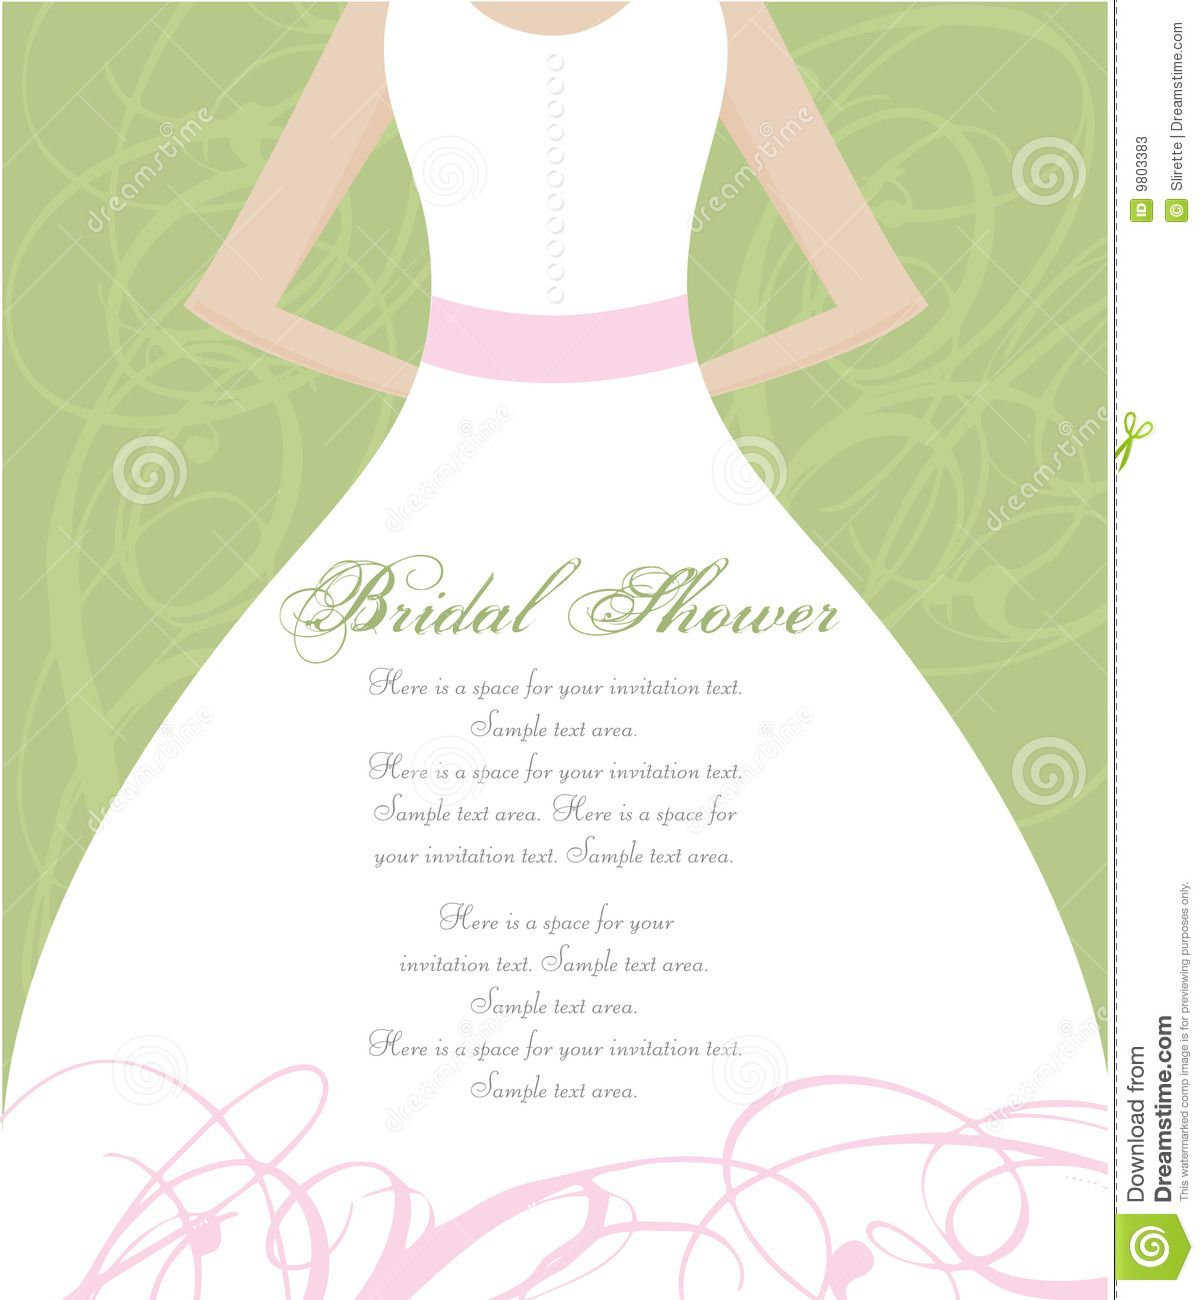 bridal shower invitation wording elegant bridal shower invitation wording baby shower invitations sweet